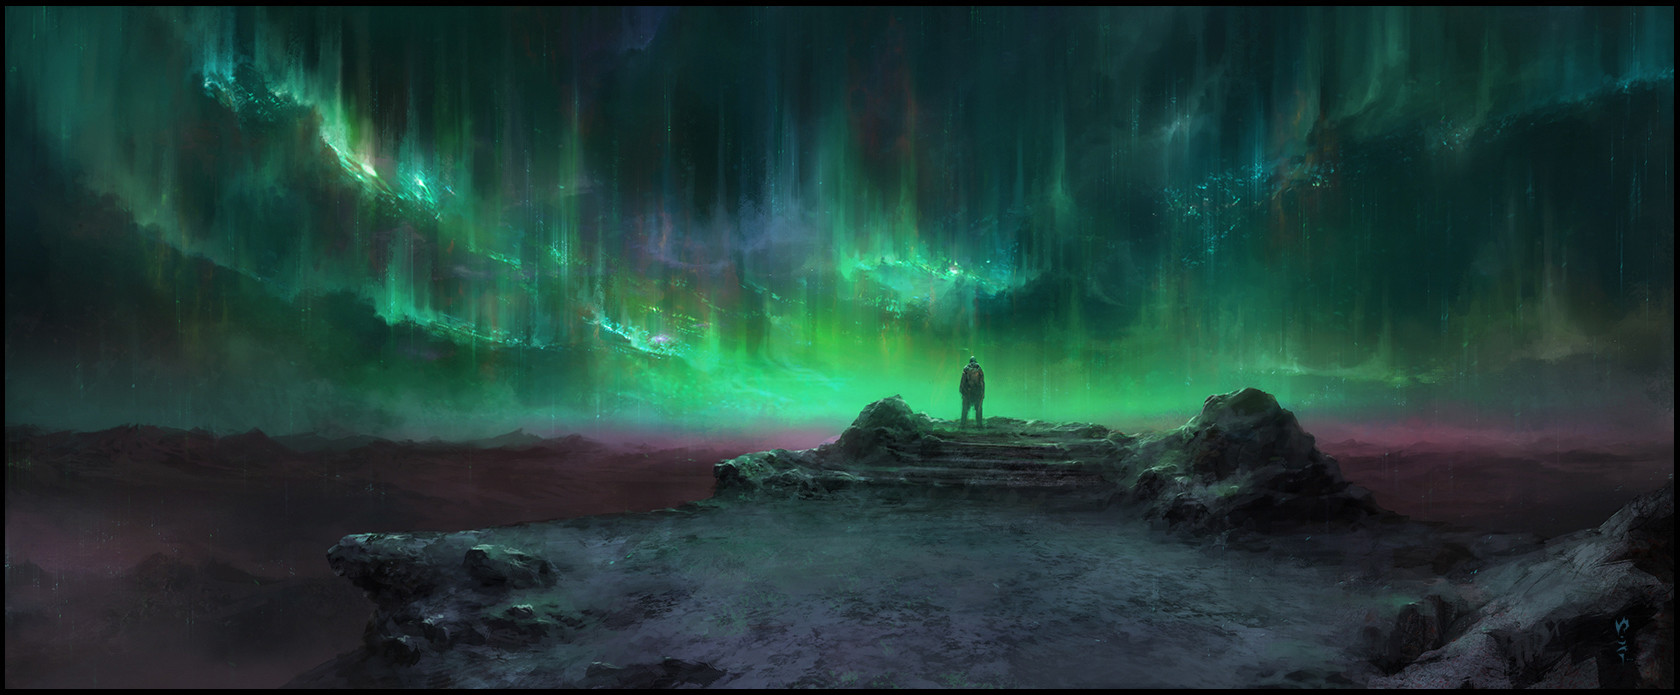 Chris cold aurora by chriscold d9erbf9